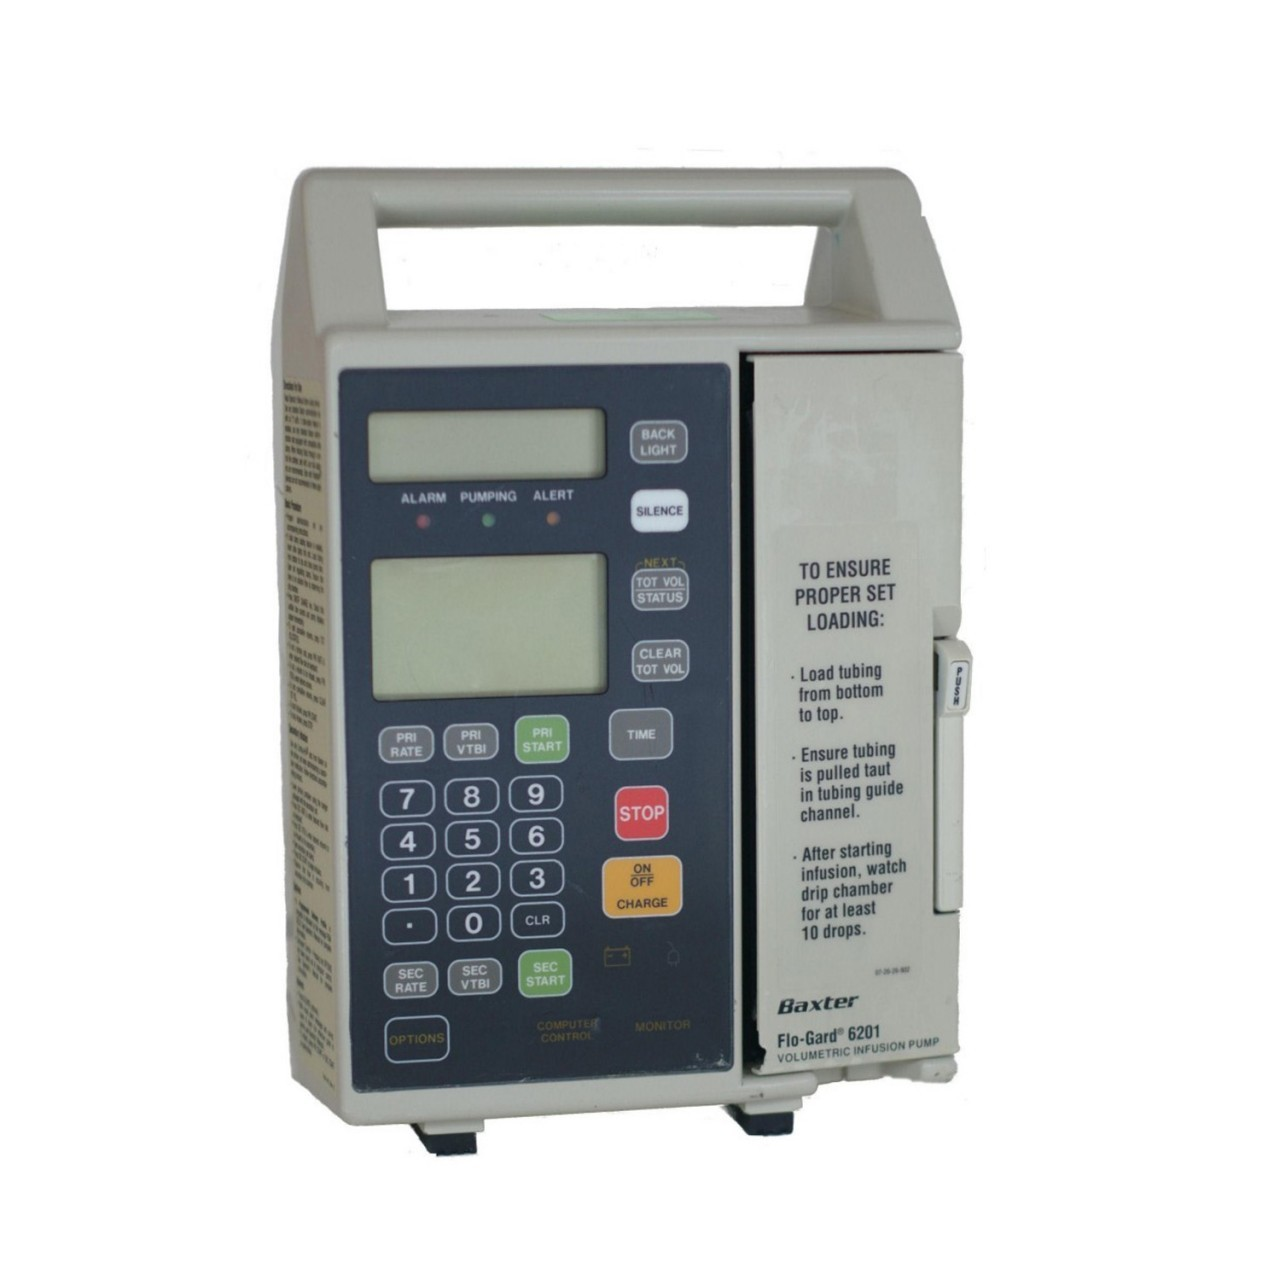 Refurbished Baxter 6201 FloGuard Infusion Pump